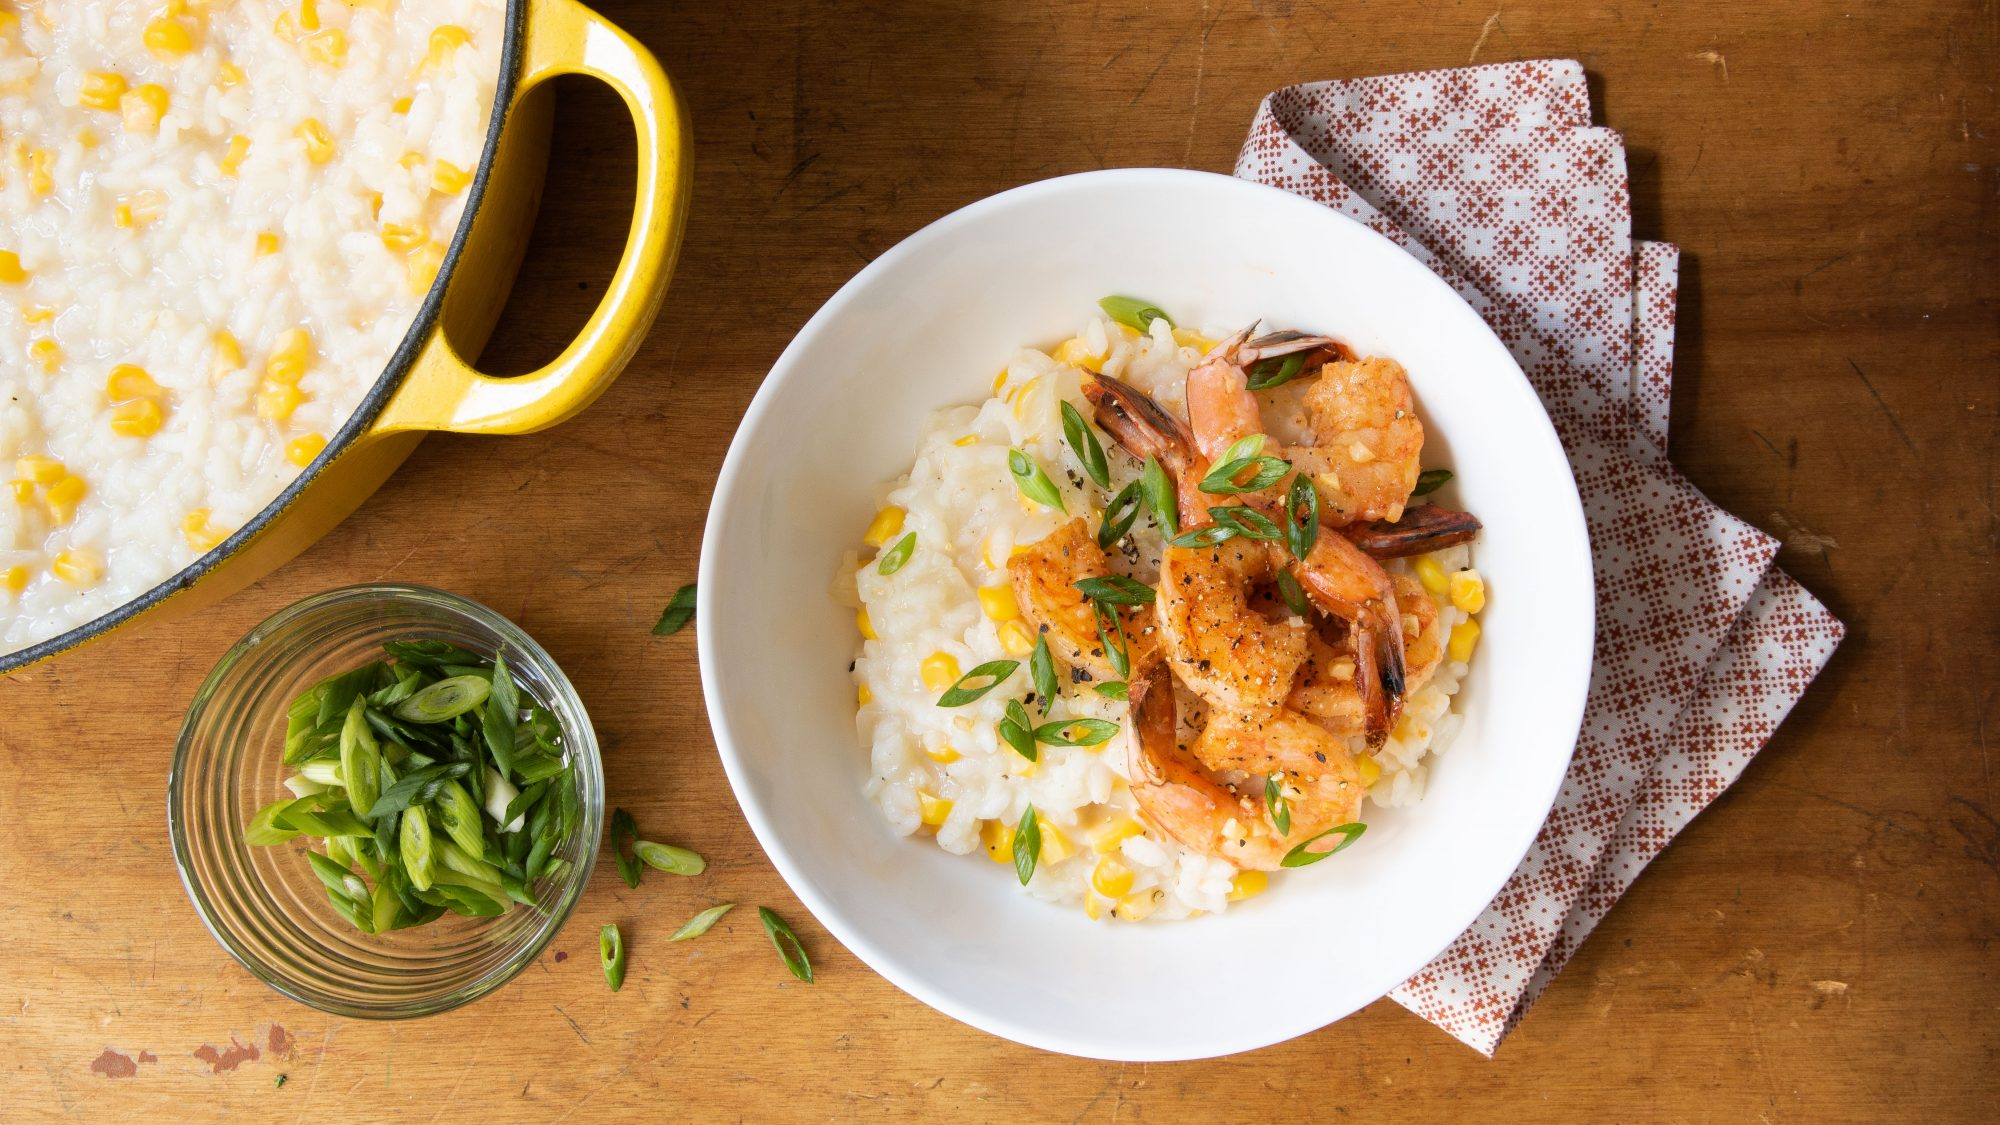 Corn risotto with spicy shrimp